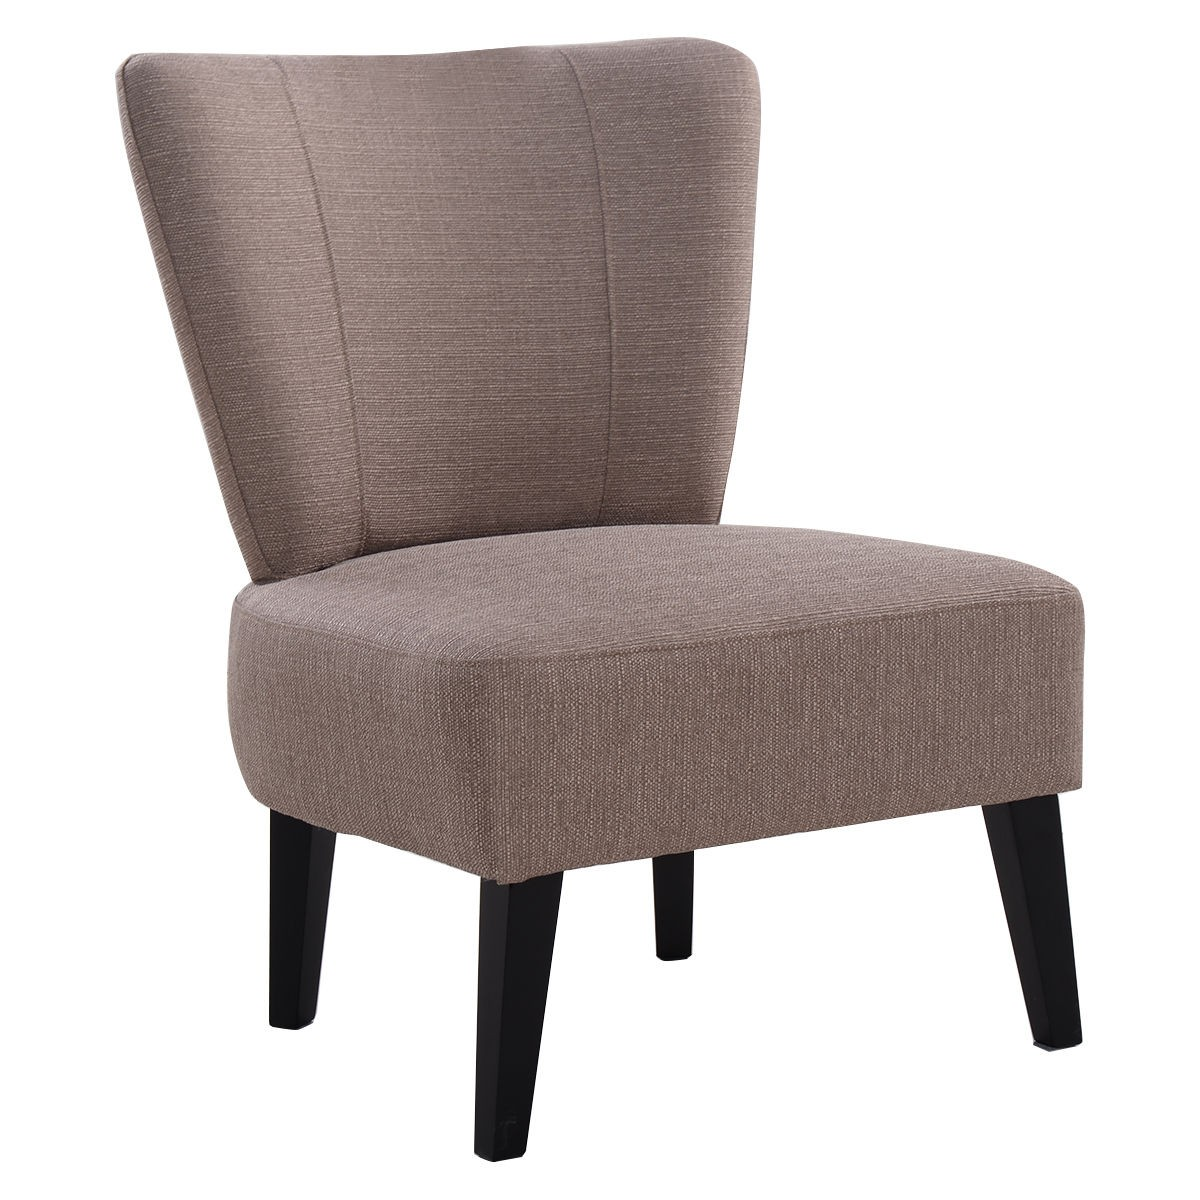 Upholstered Side Chairs Armless Accent Chair Upholstered Seat Dining Chair Living